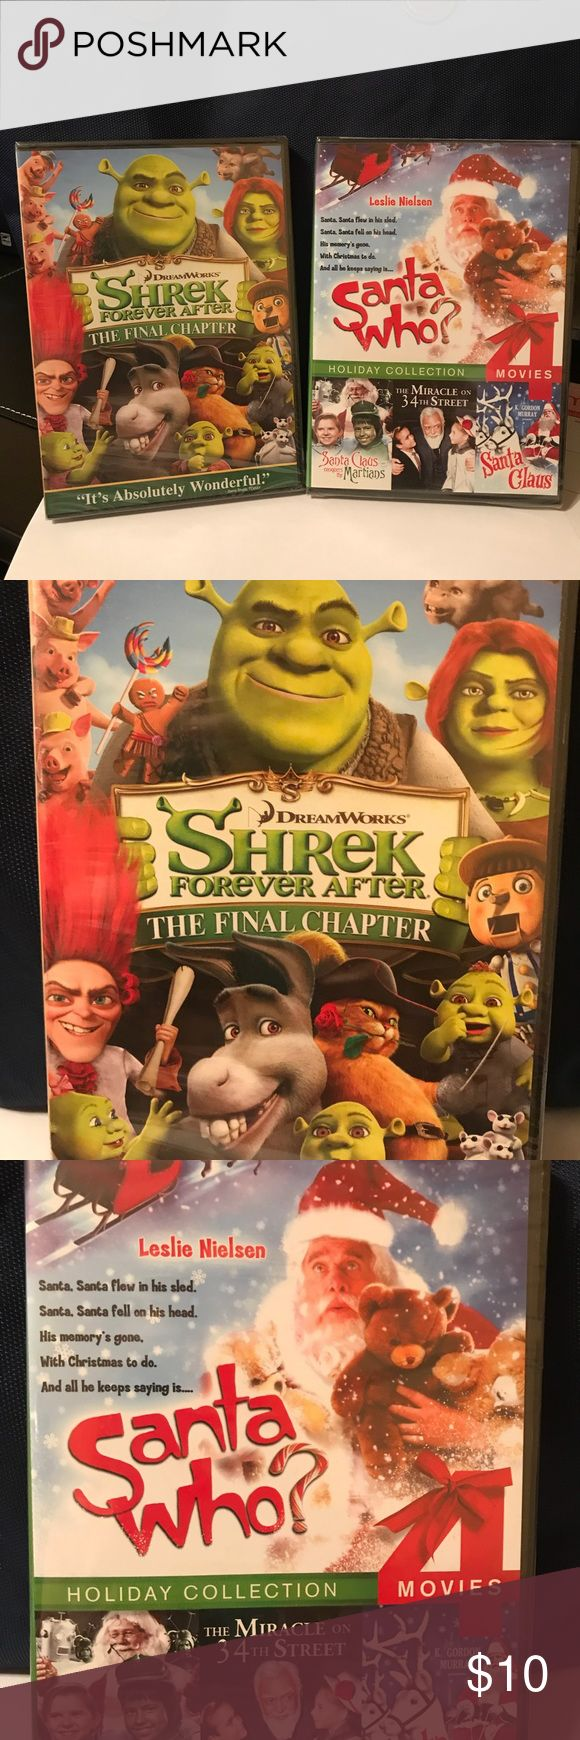 🎄Two Christmas DVD's🎄 The DVD's up for sale are unopened and have never been used.  The DVD's are:  Shrek Forever After - The Final Chapter Santa Who Santa Claus Conquers the Martians Miracle on 34th Street Santa Claus Other